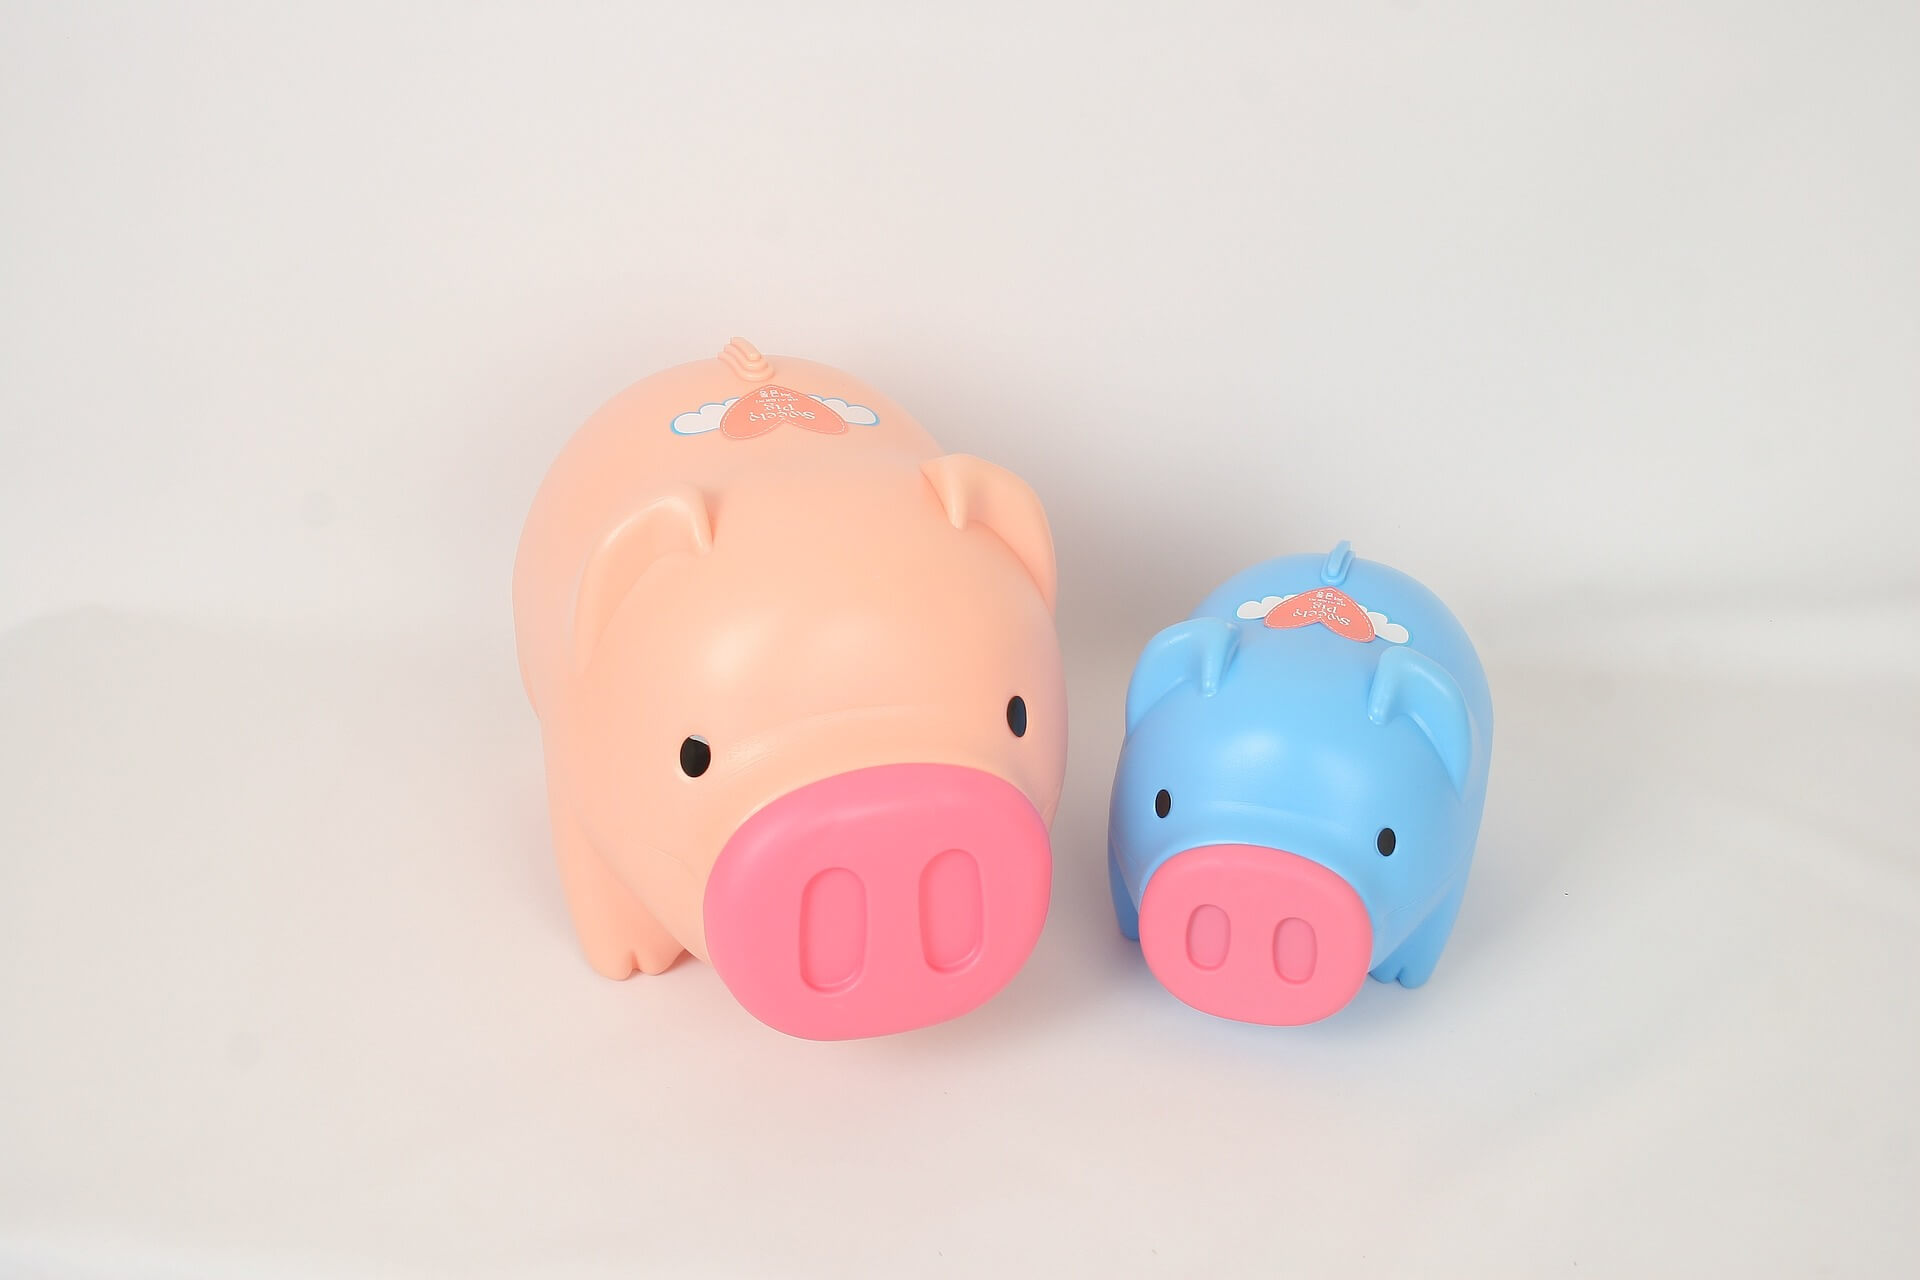 Money saving tips for maternity leave - piggy banks